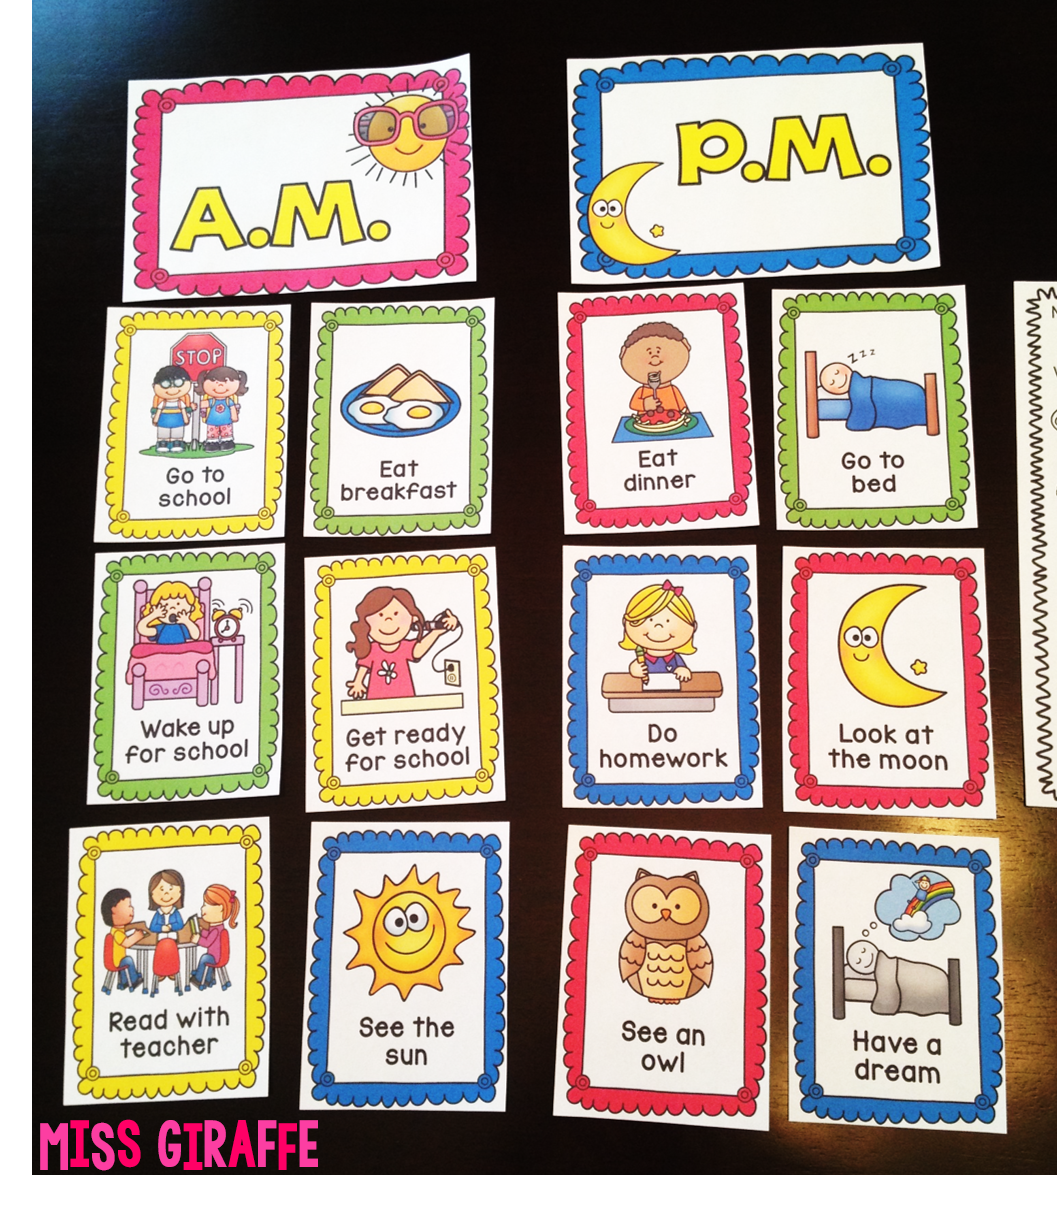 Telling time games and activities A.M. or P.M. activities sort to practice day and night